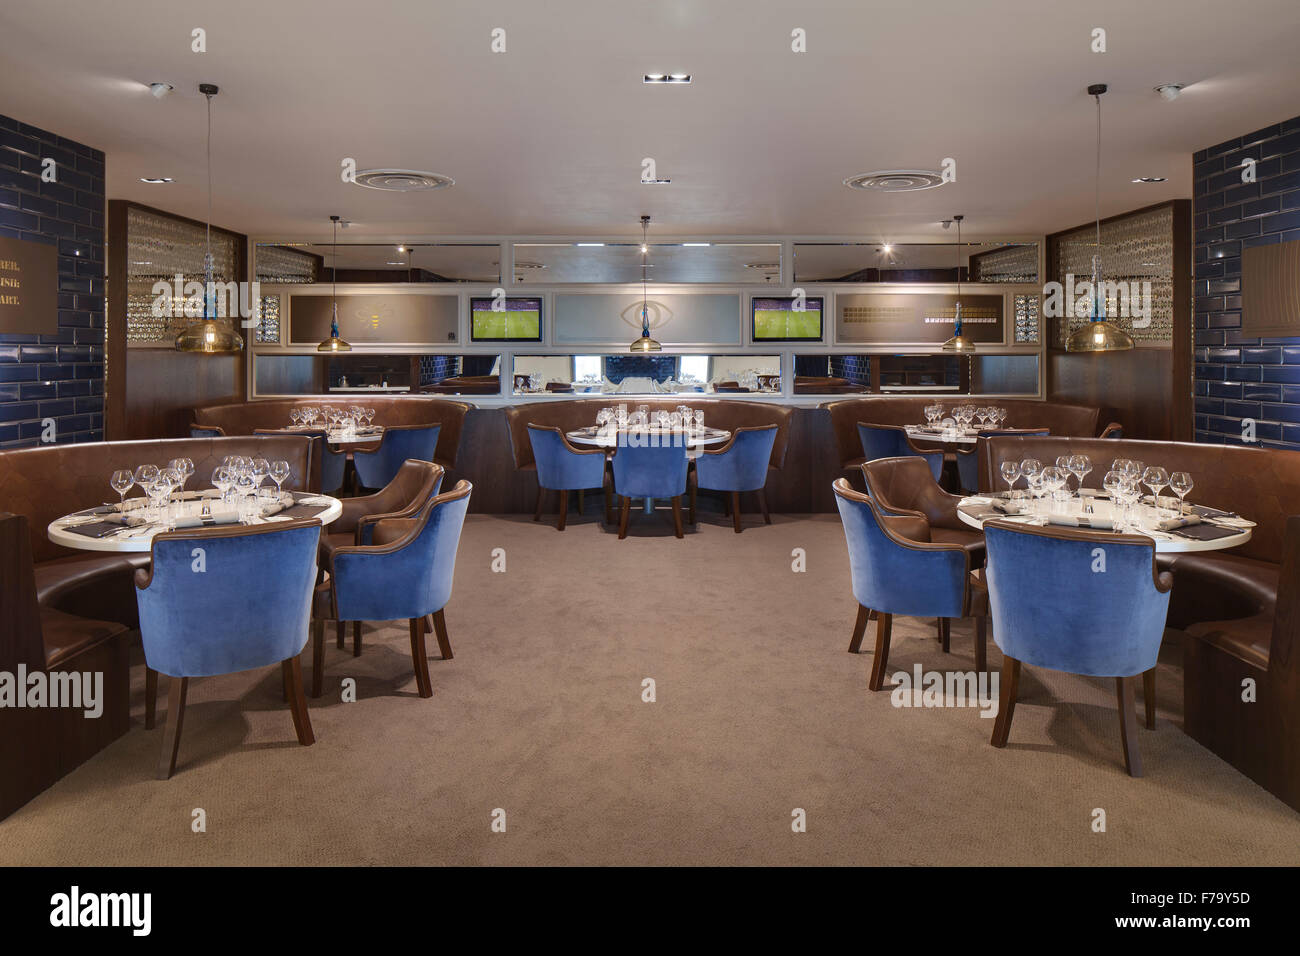 The Connaught at Etihad Stadium, Manchester City 2013, design by 2020 - Stock Image